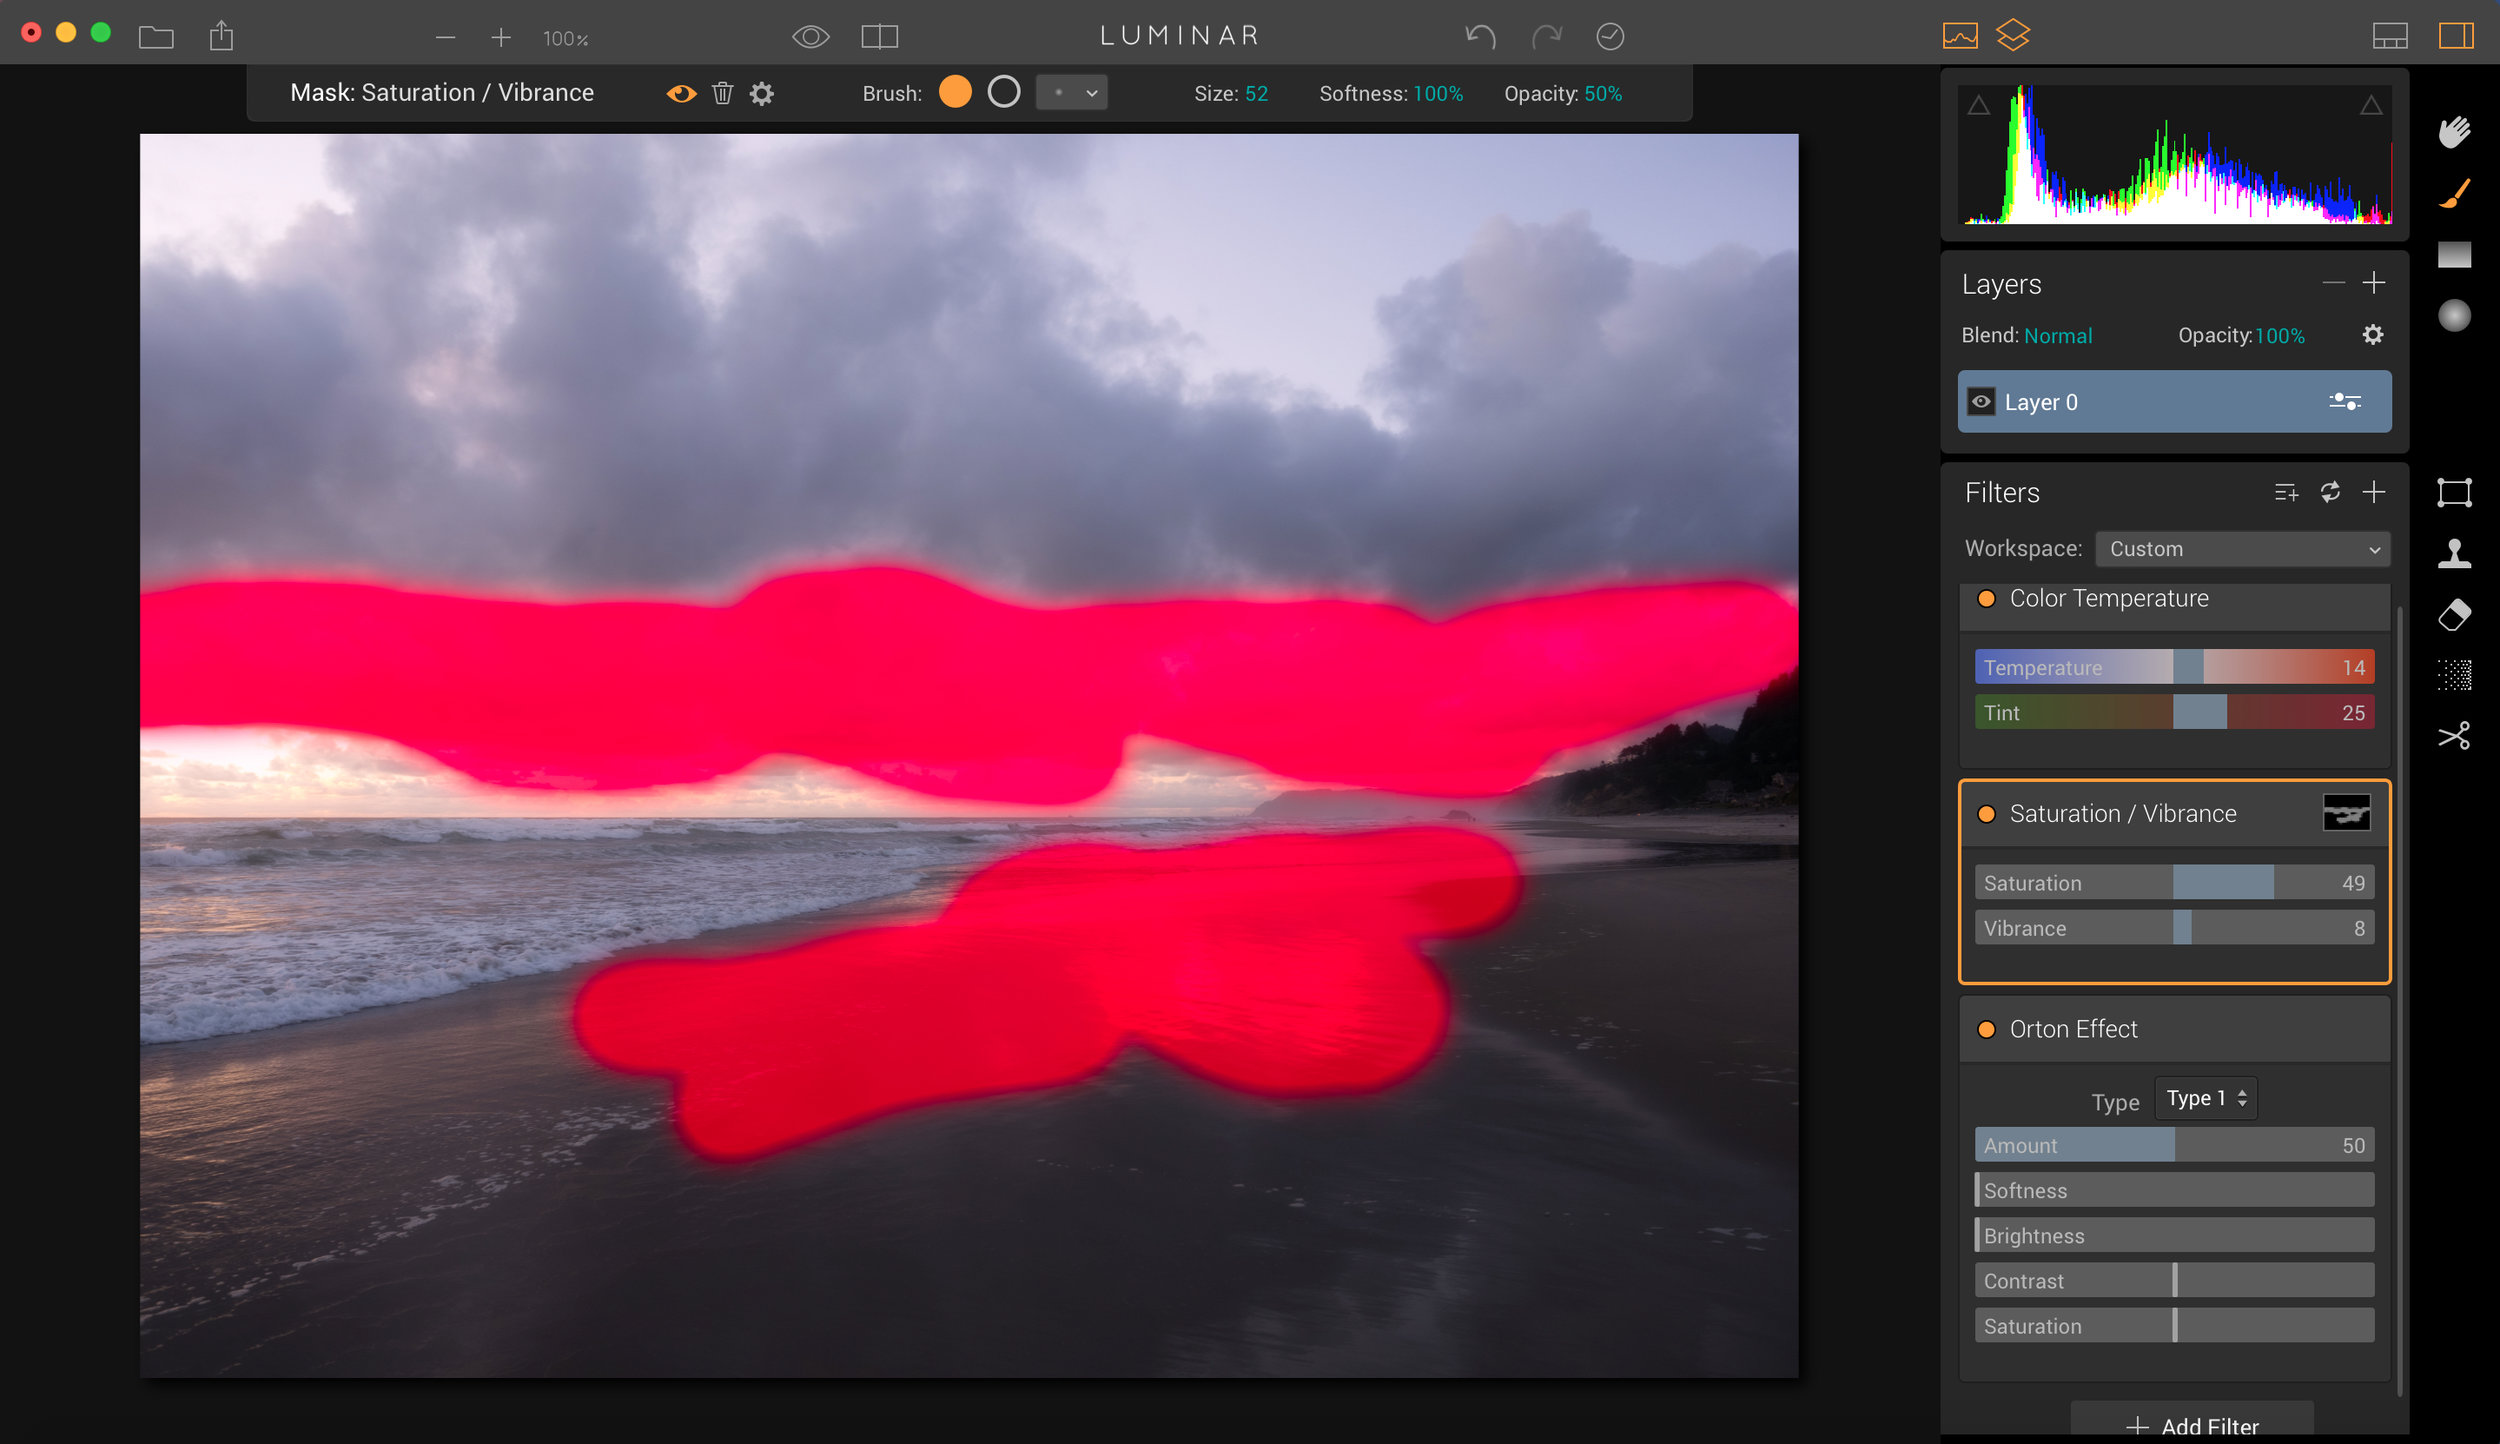 Click on the brush and then the filter you want to mask, and then paint away.